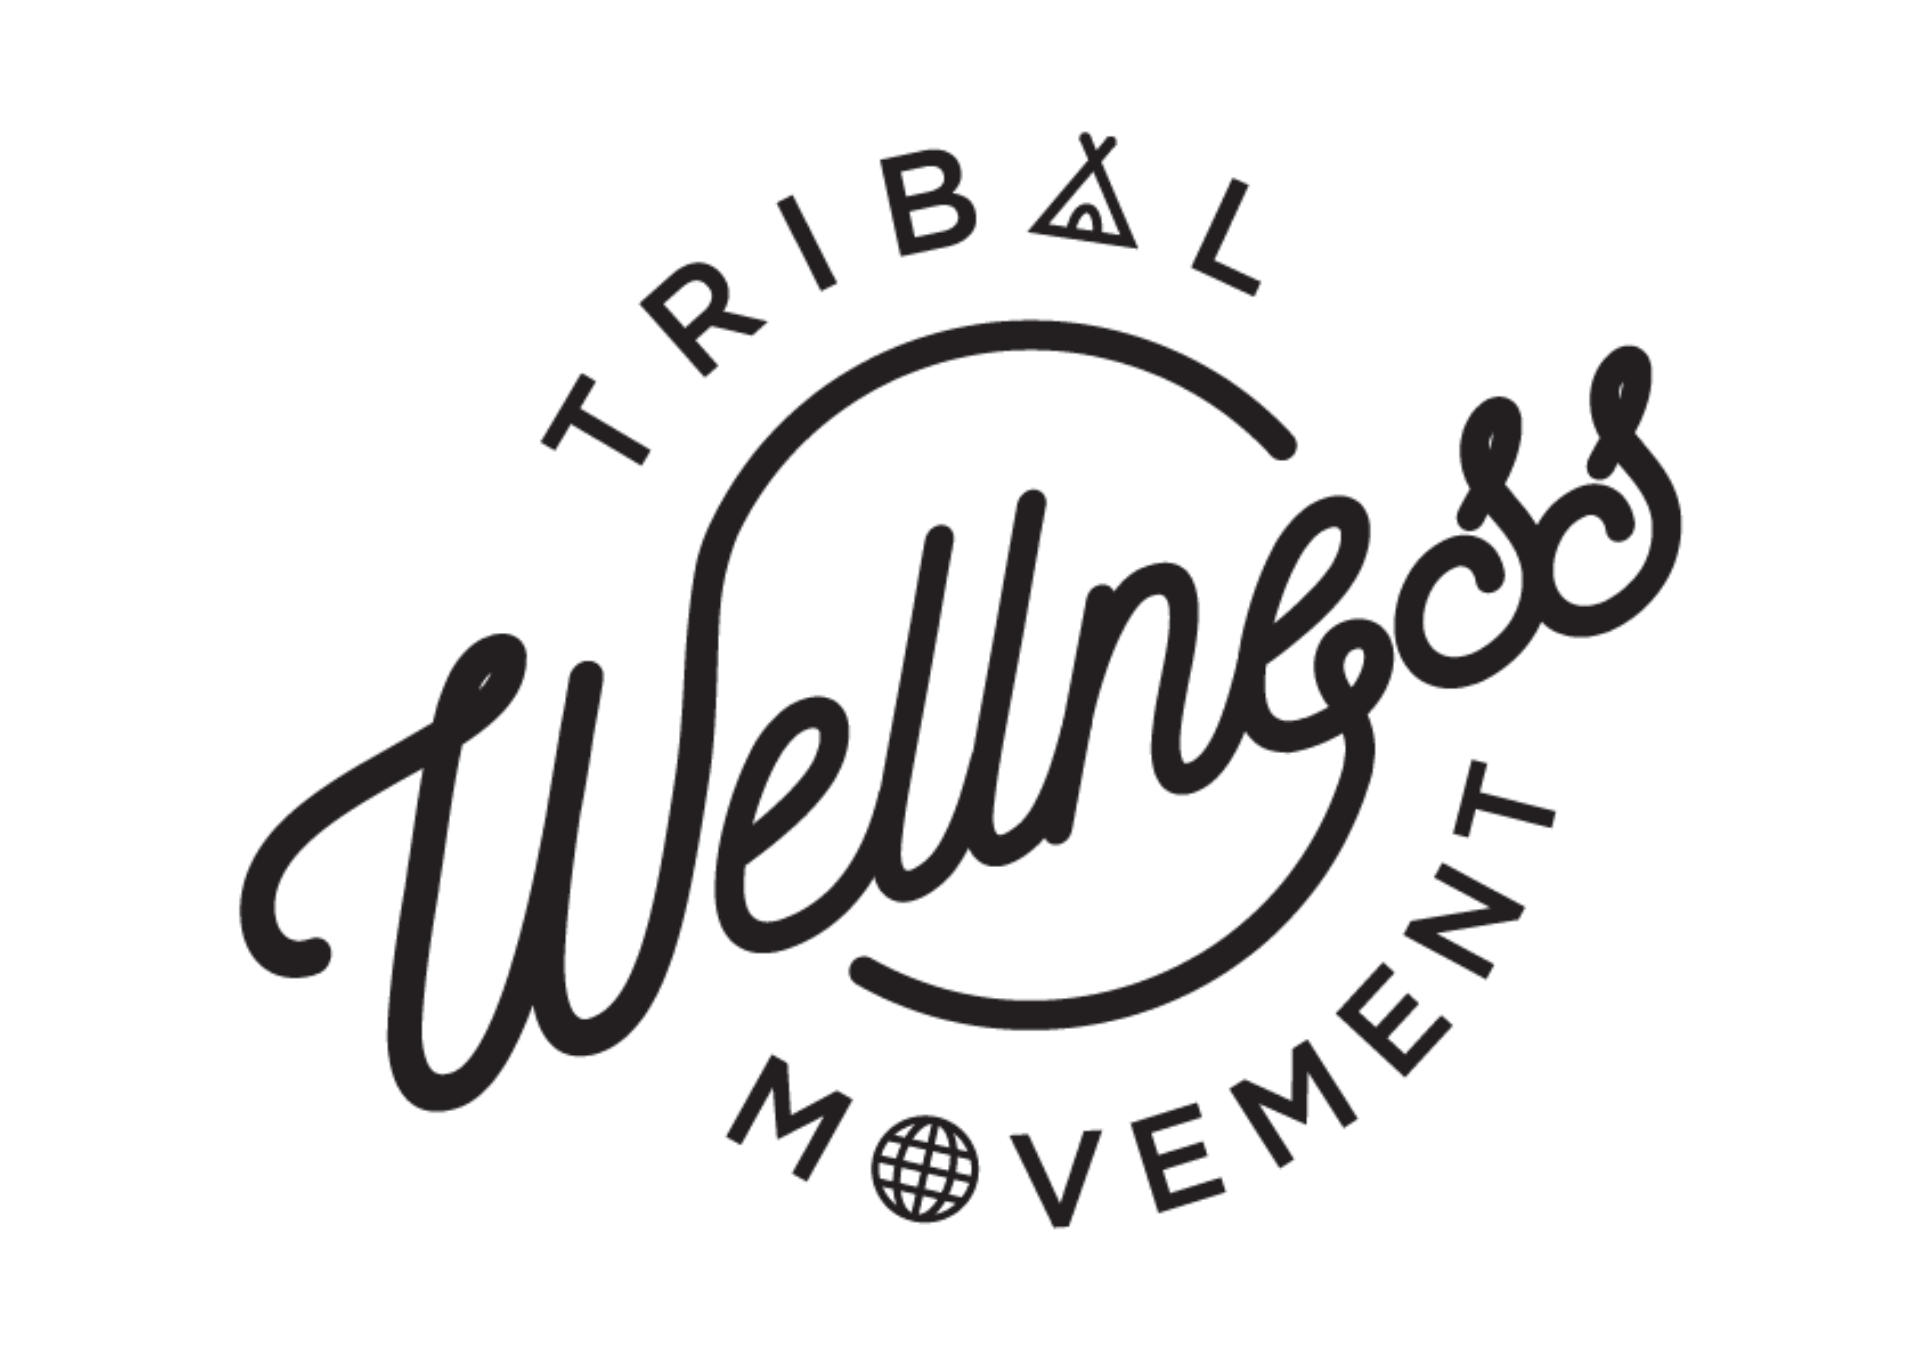 Tribal Wellness Movement